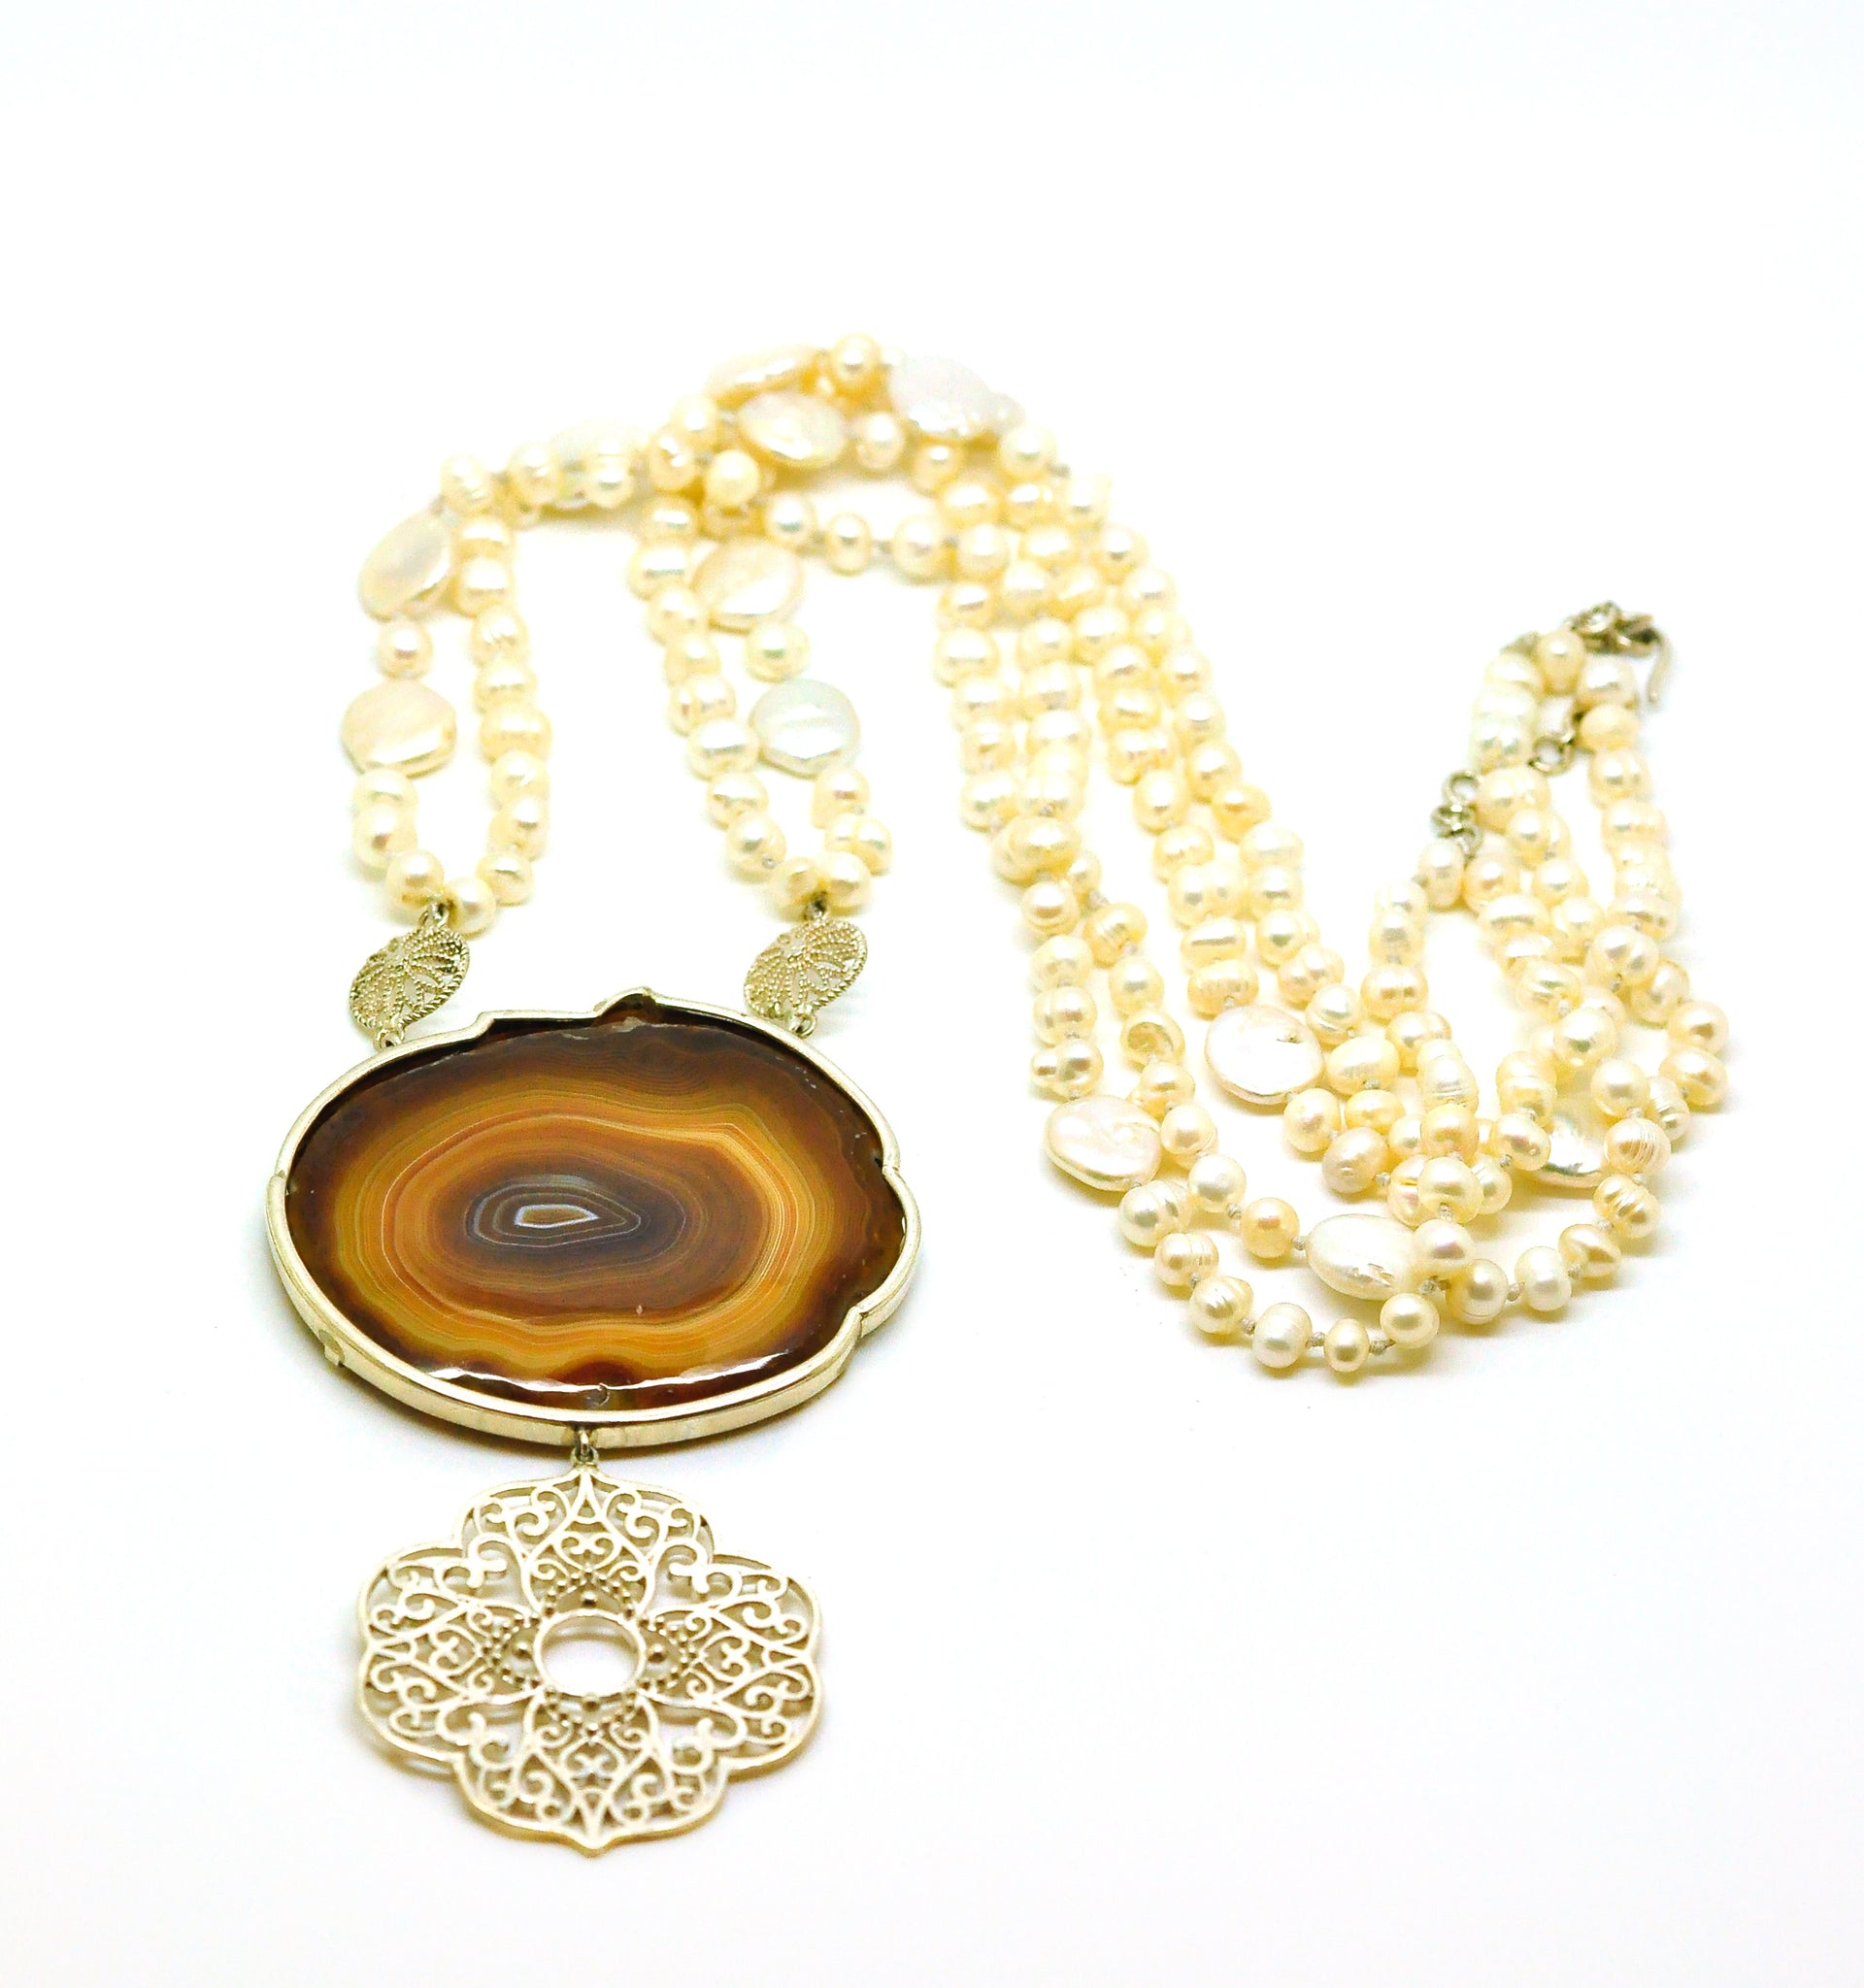 NEW Druzy necklace with pearls and filigree